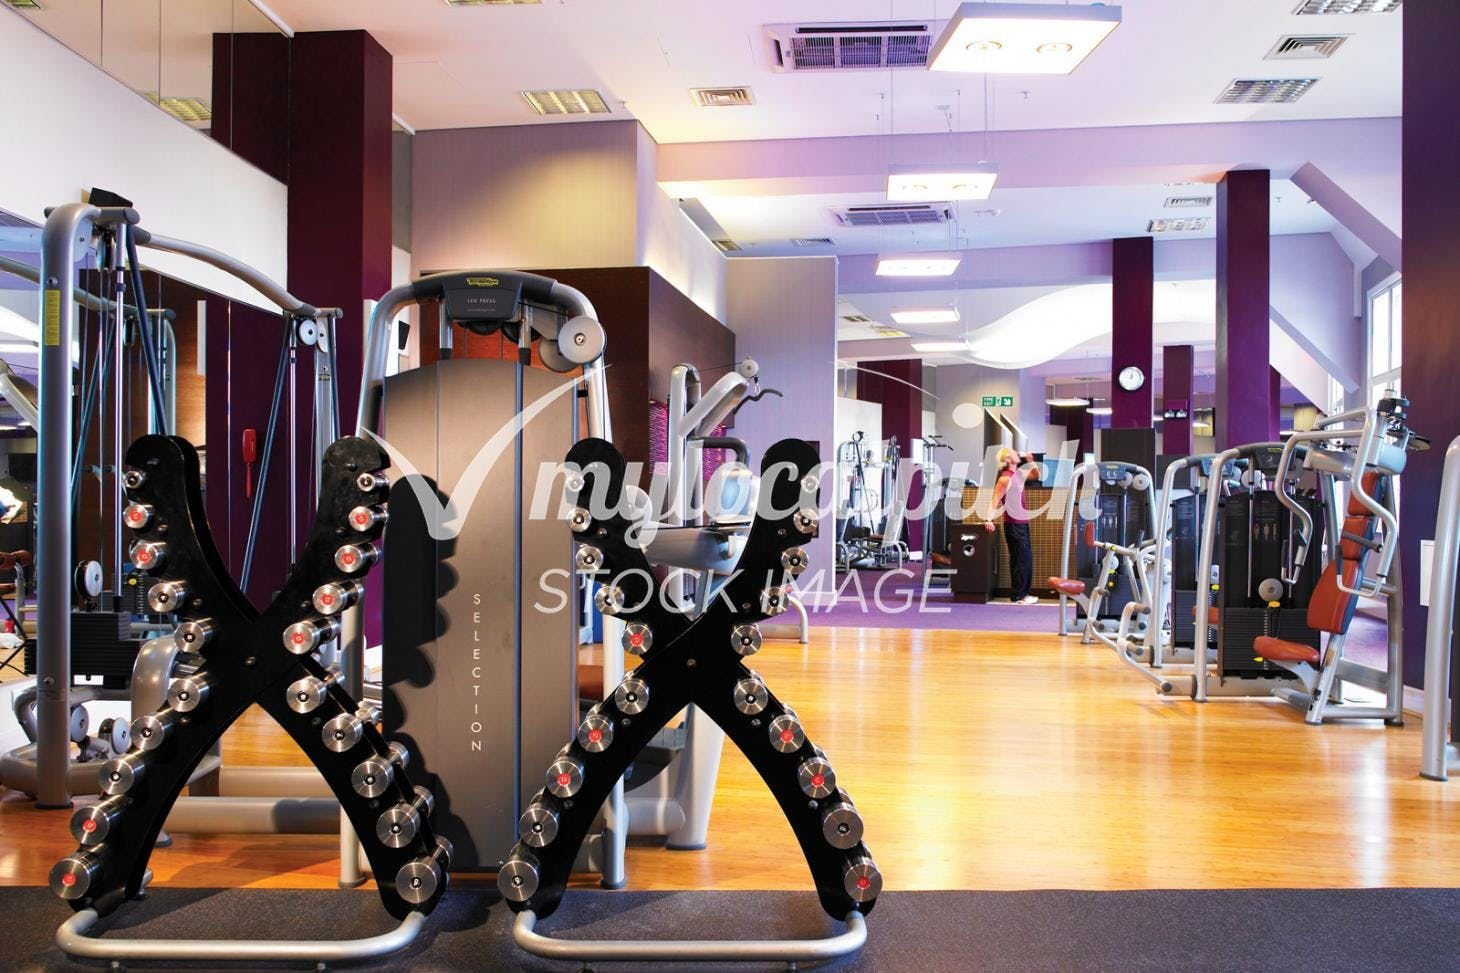 Kensington Leisure Centre Gym gym